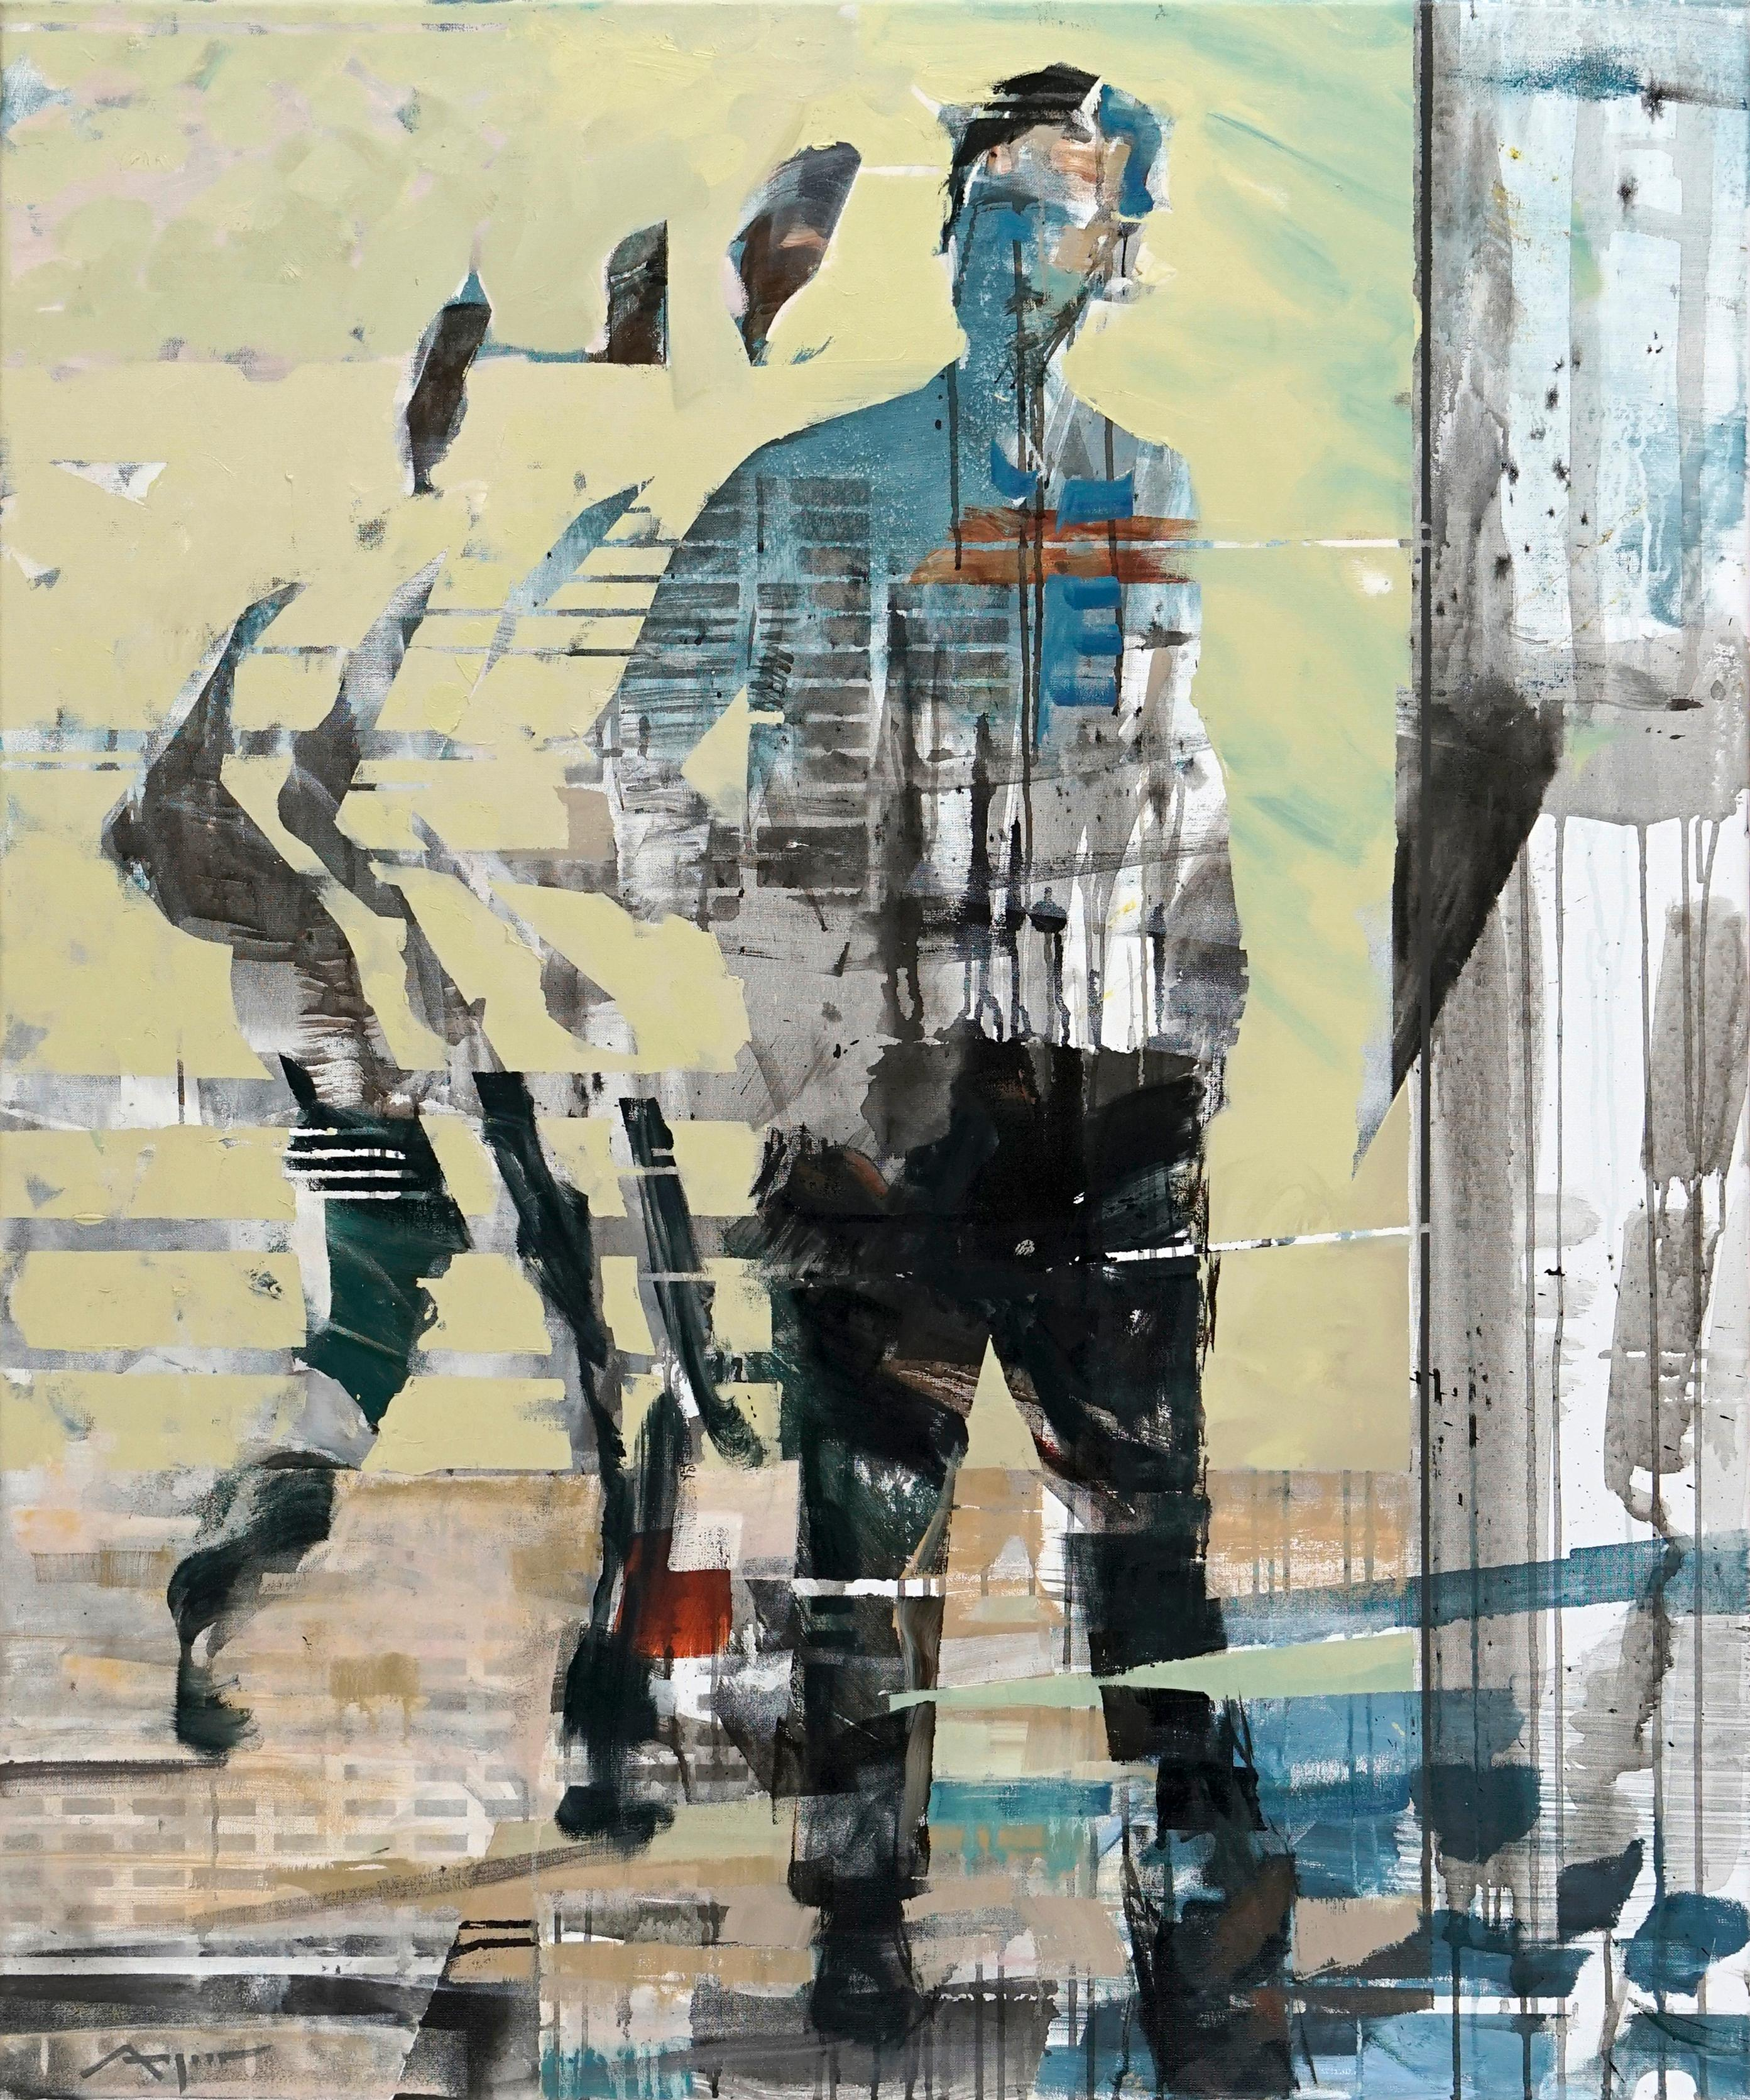 Transitions III - yellow grey blue brown abstract and figurative painting